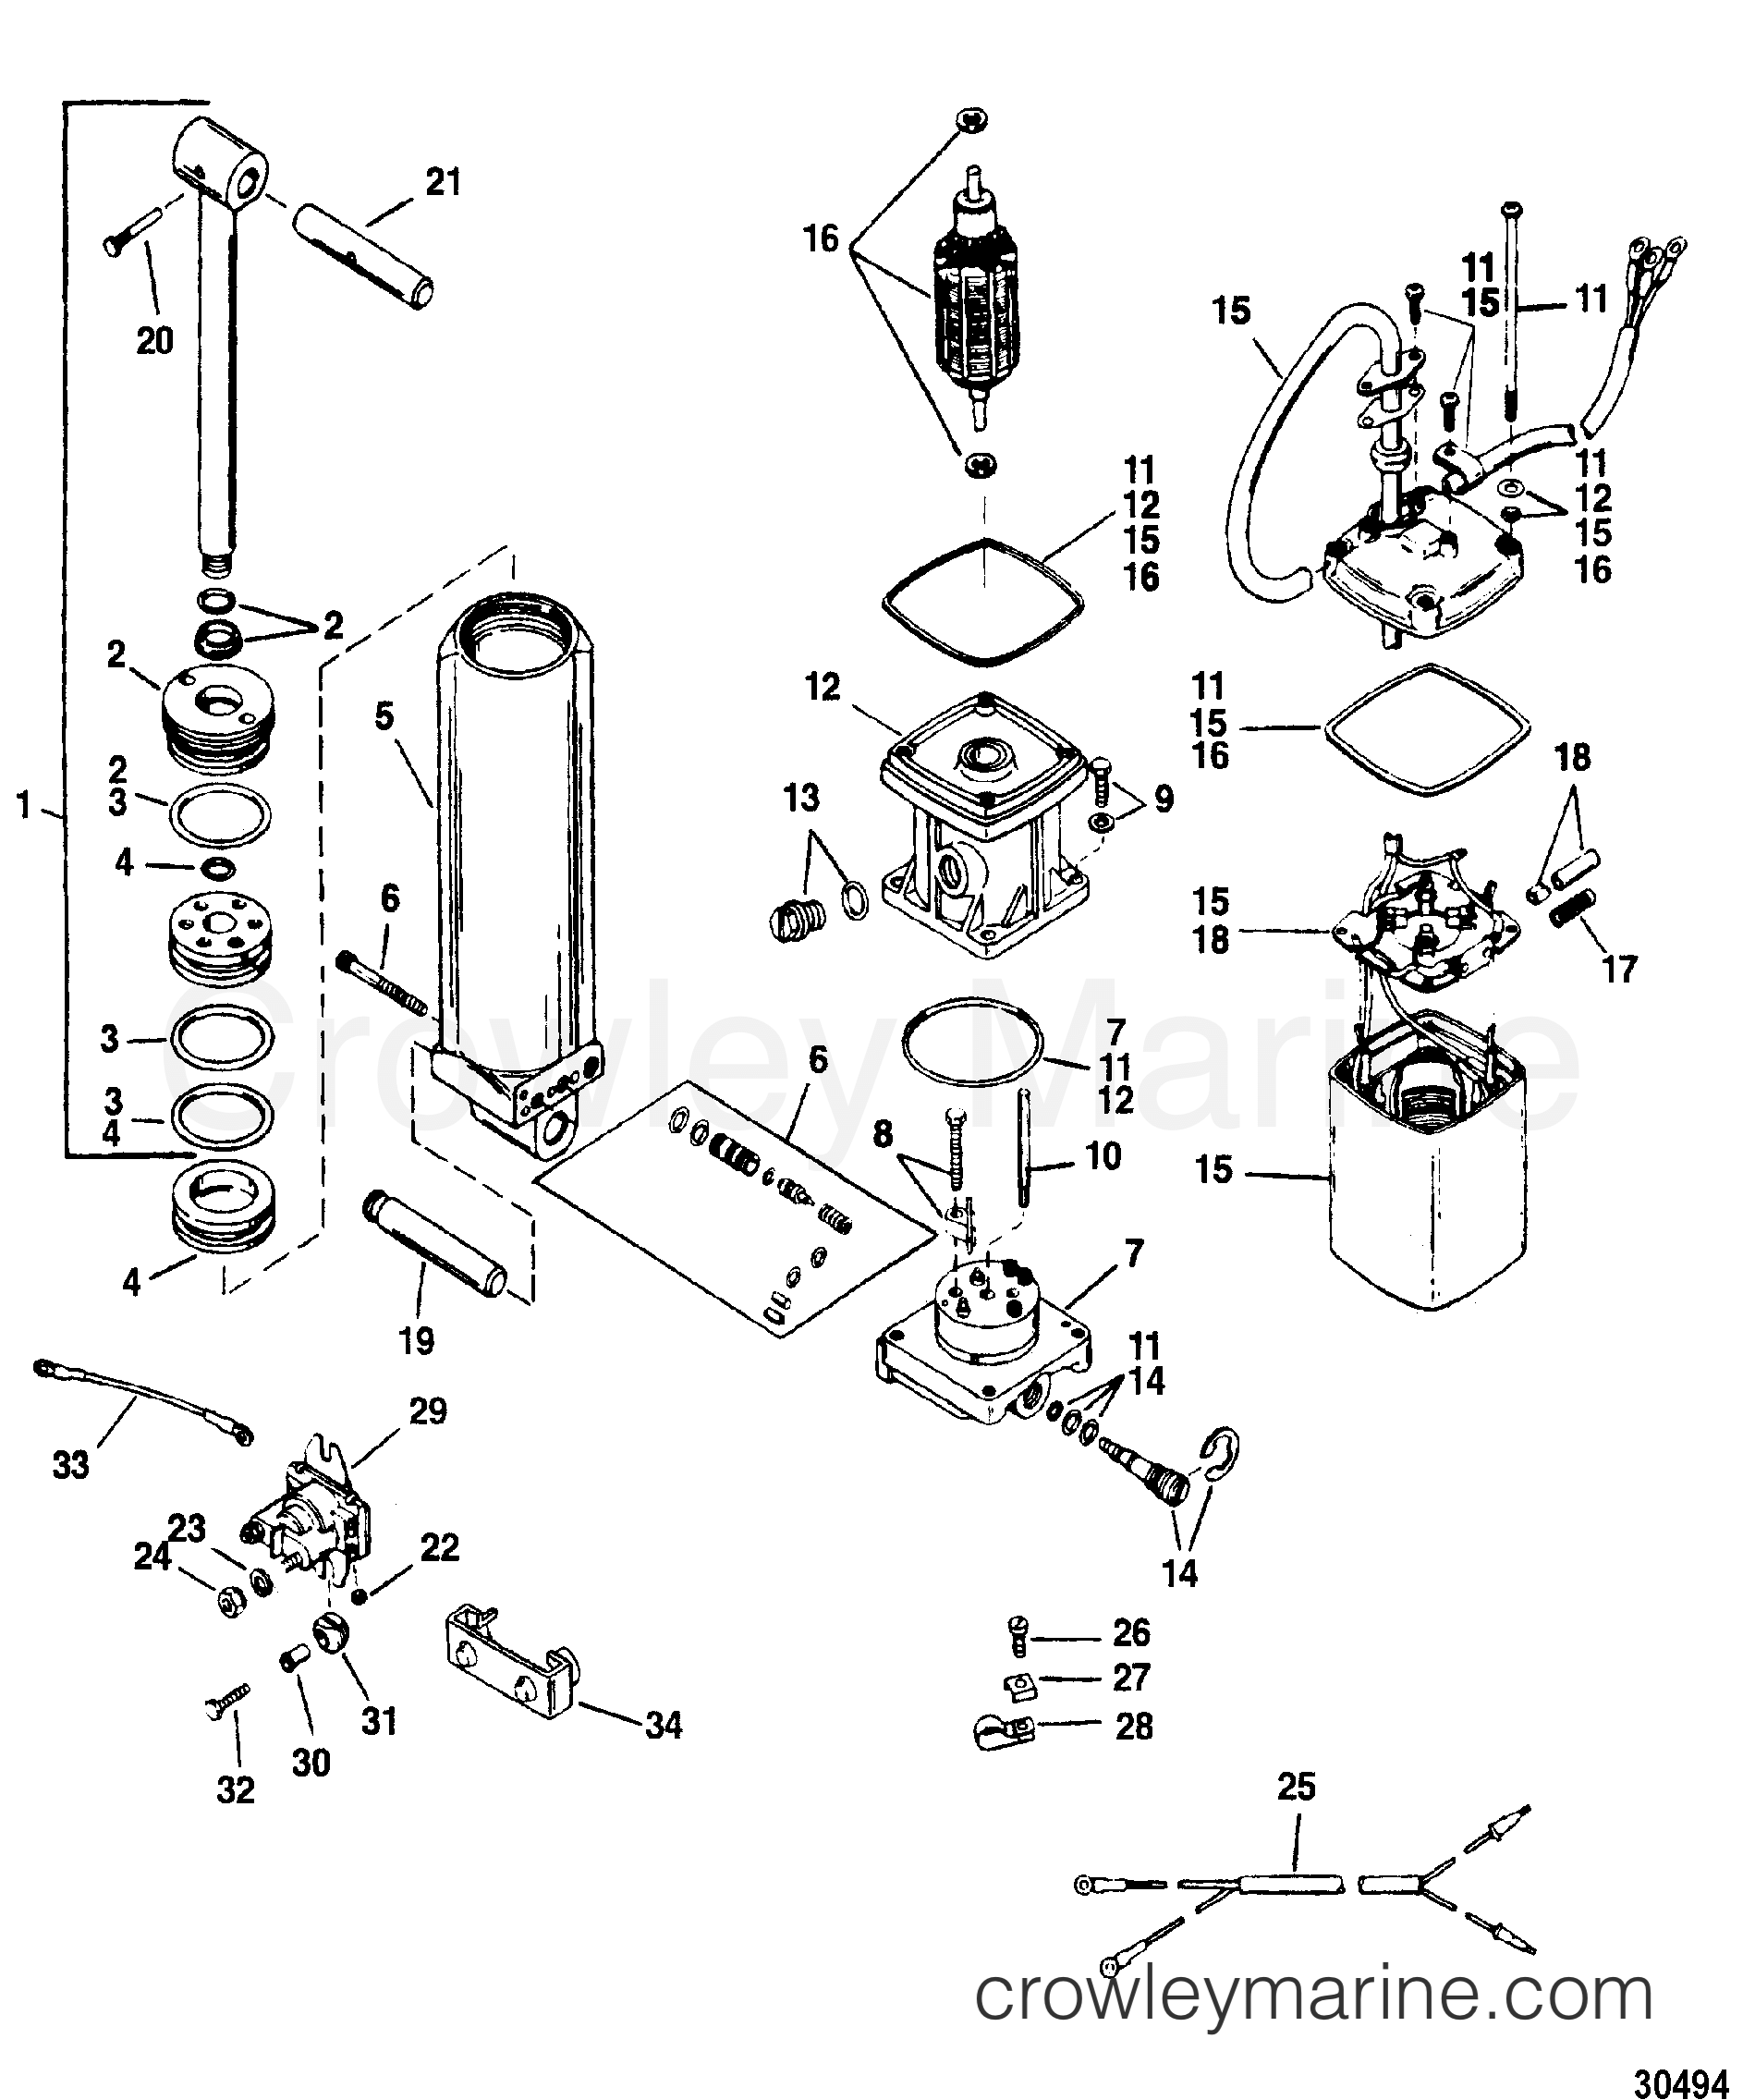 hight resolution of mercury power trim pump diagram images gallery